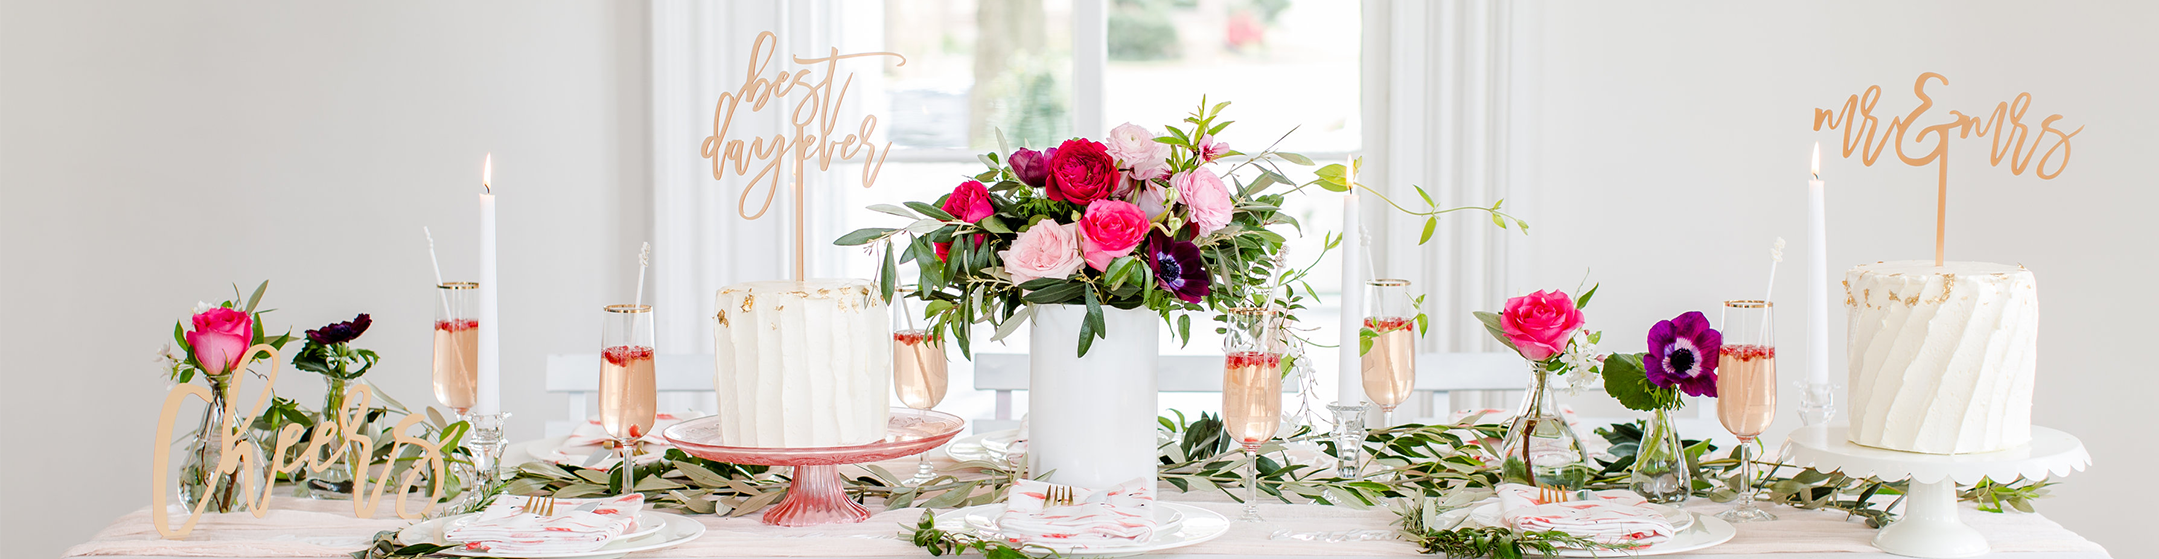 Party Table With Cakes, Roses and Champagne